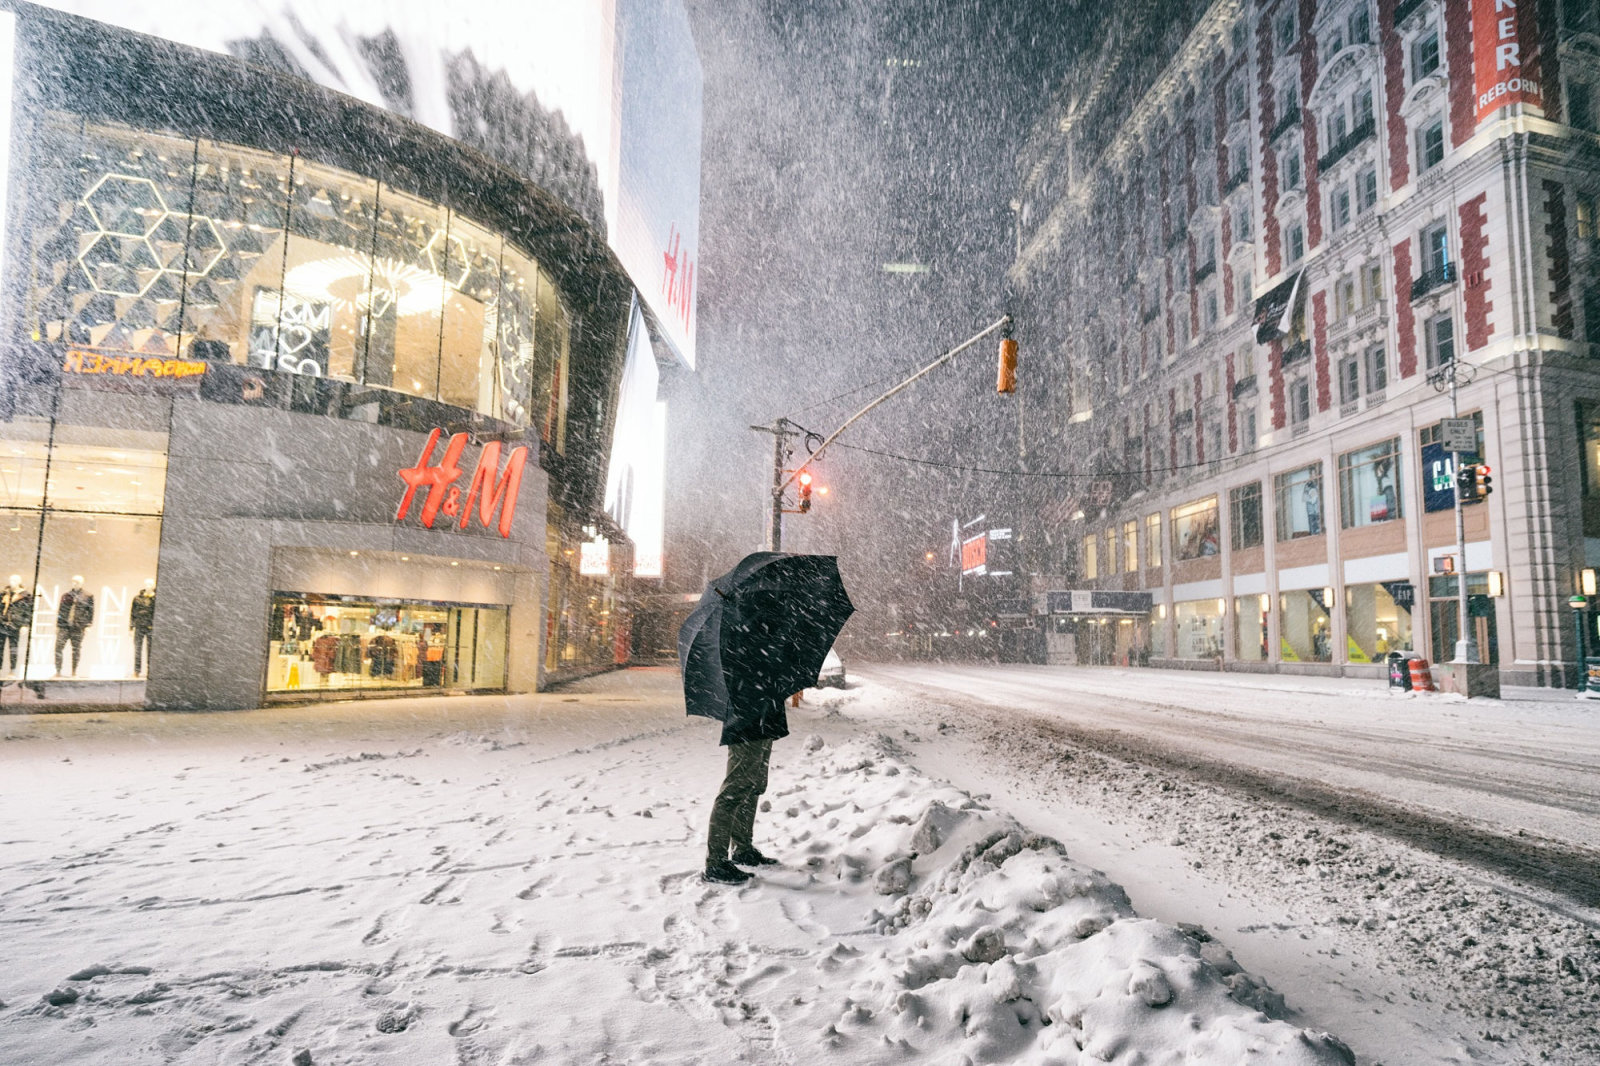 New York City - Winter Storm Juno - Times Square (of )